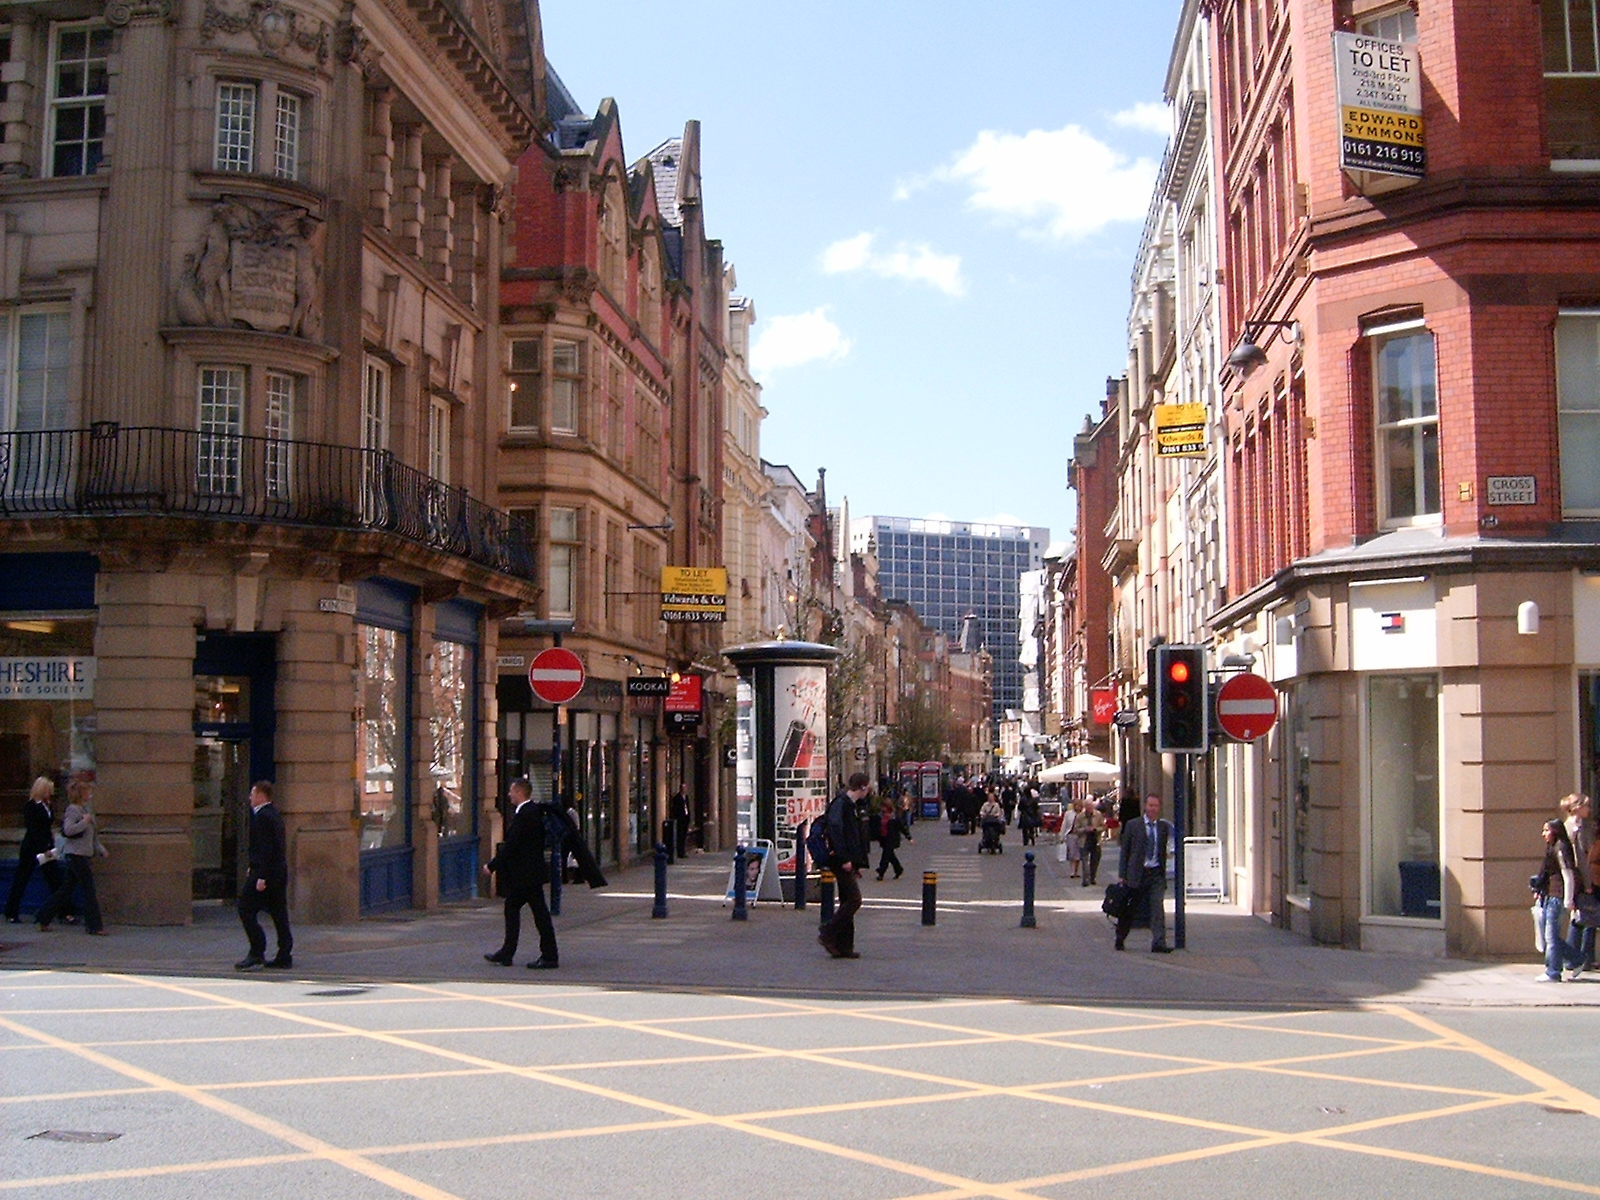 File:King Street 4.jpg - Wikimedia Commons Street